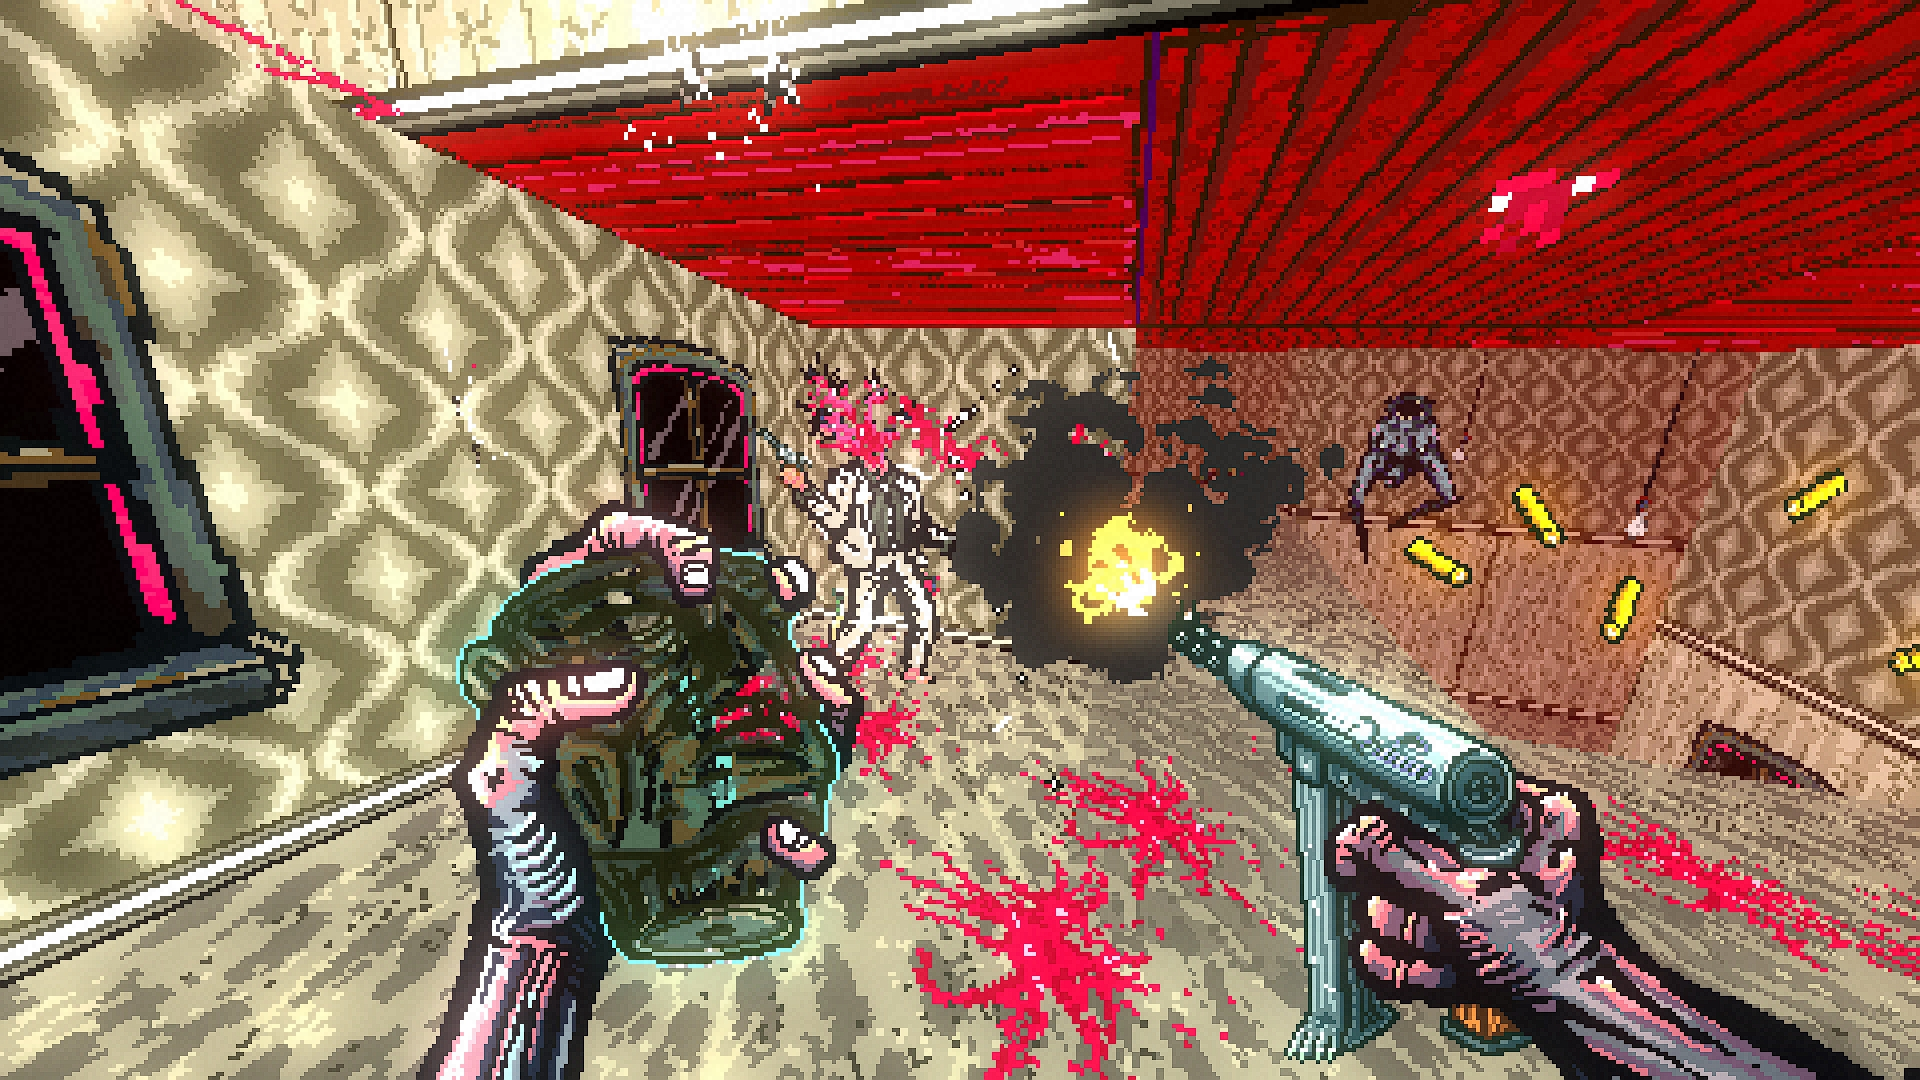 The player fires an uzi at monster in a white suit, in a wide open room with sickly green walls and floor. To the right, a bipedal mouth leaps across a gap to reach the player.